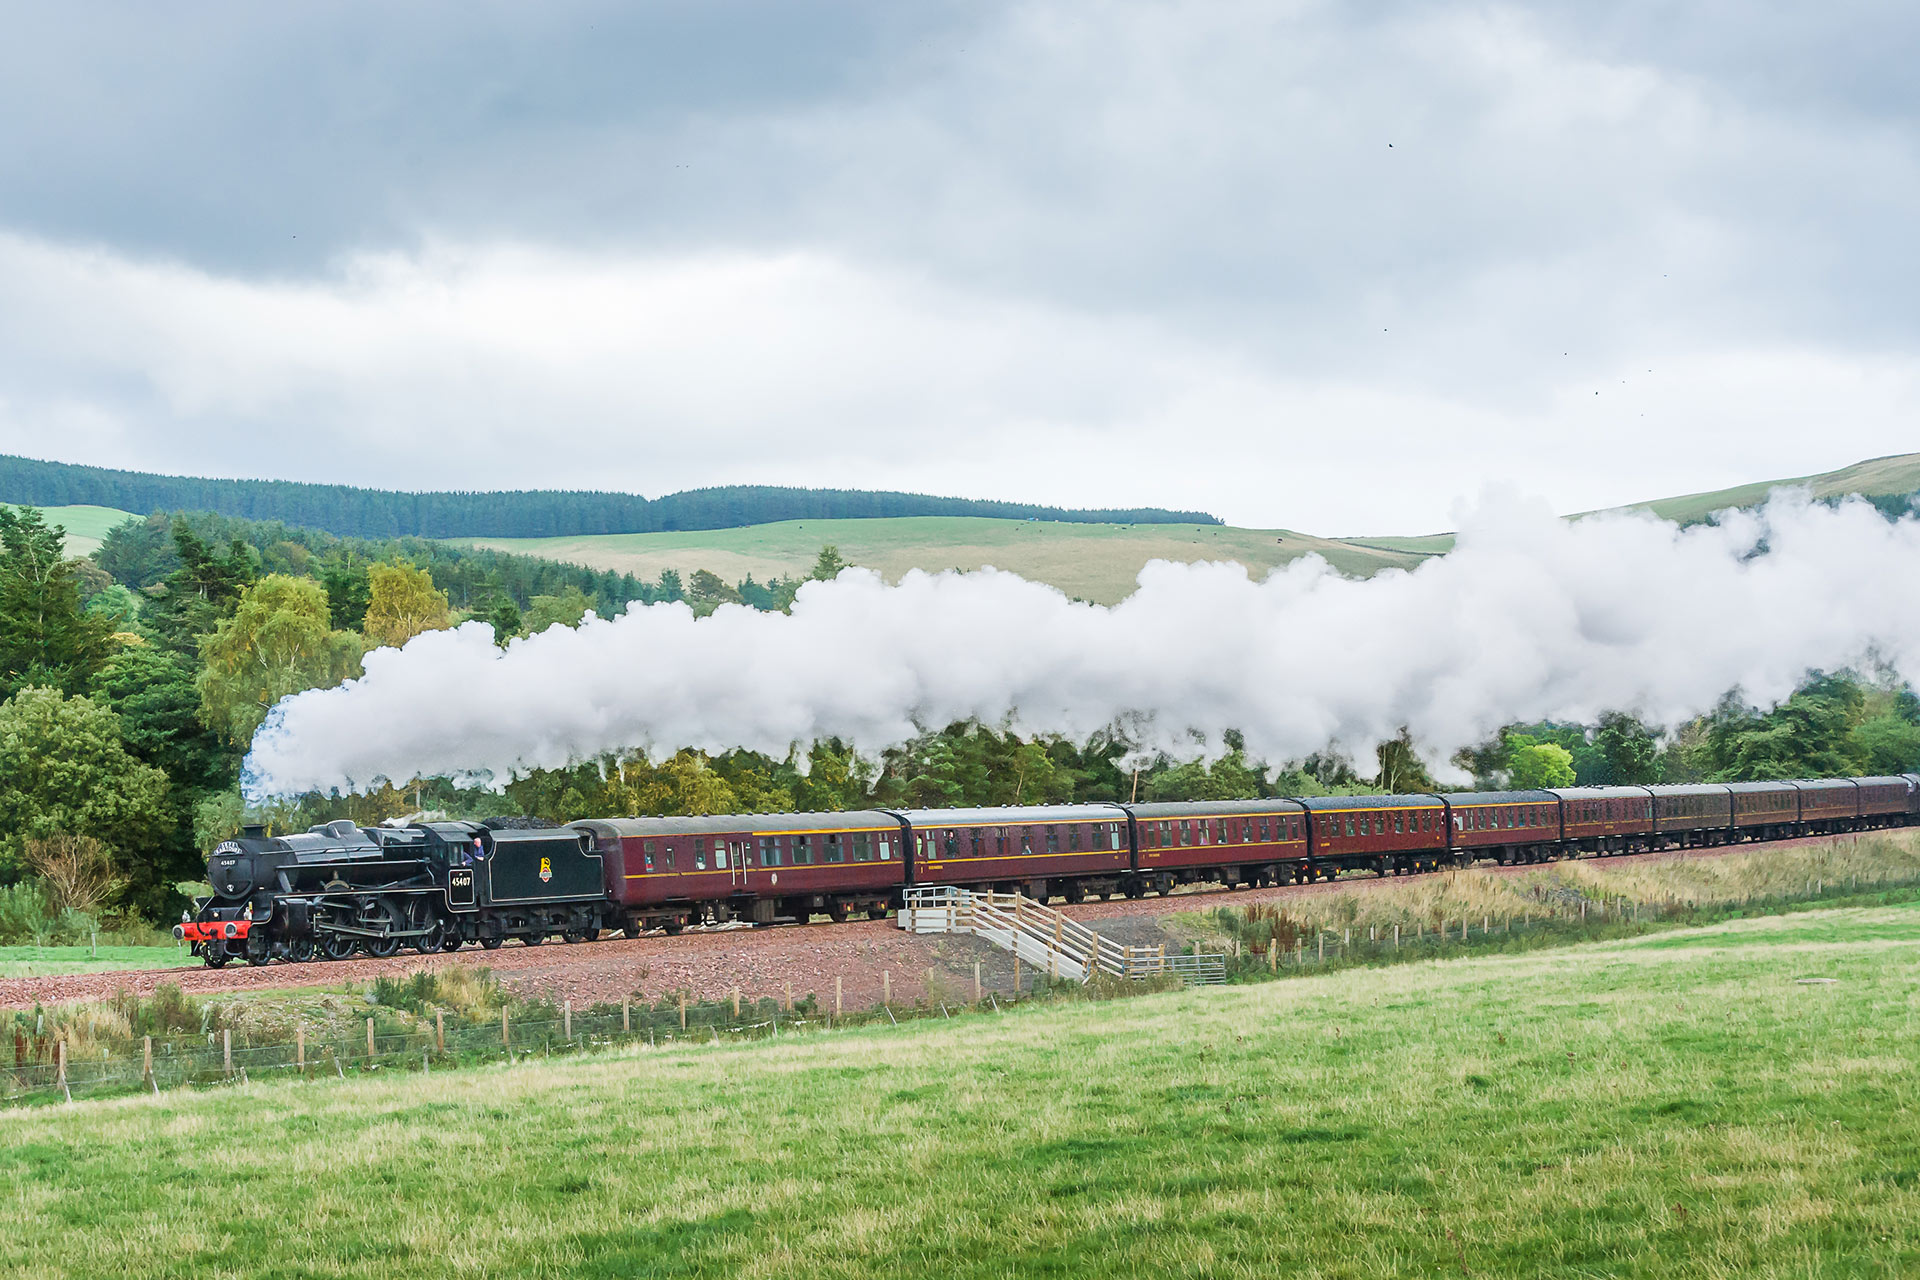 A steam train puffs throught the lush countryide. Image © Keith Sanders